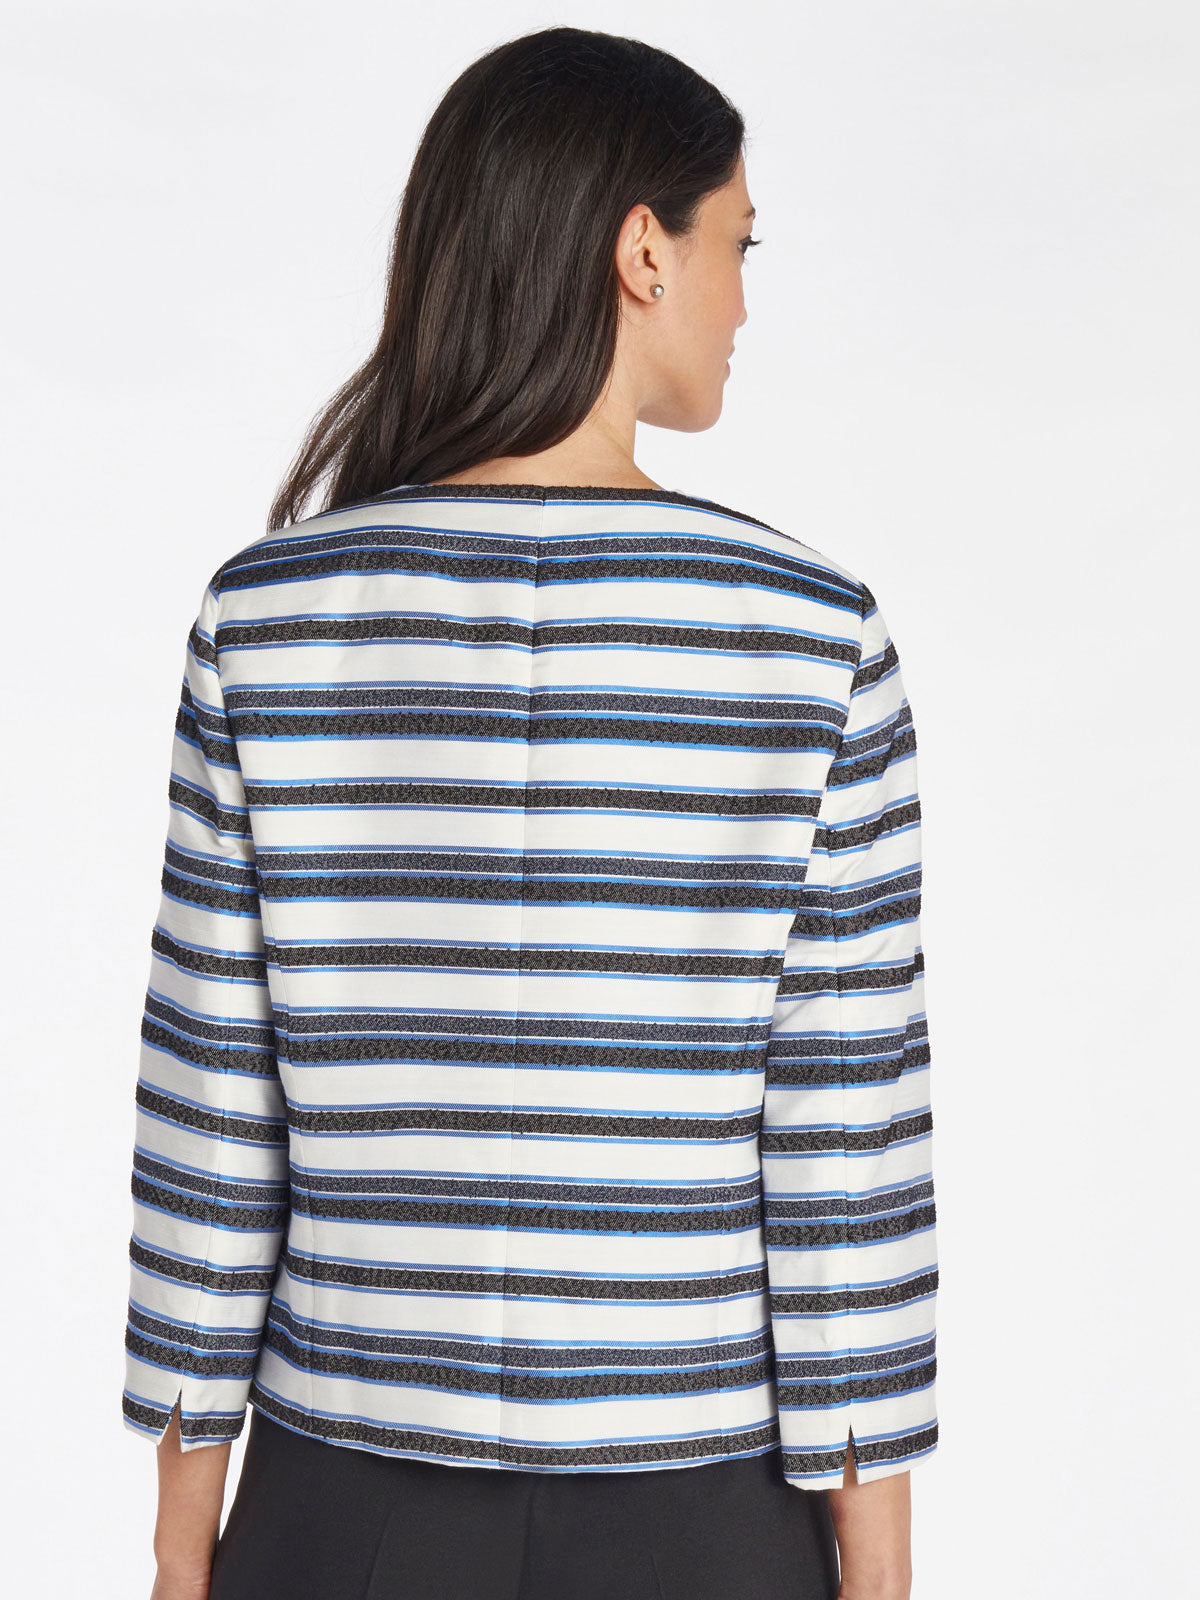 Textured Stripe Jewel Neck Jacket – Mariner Blue Multi – Kasper